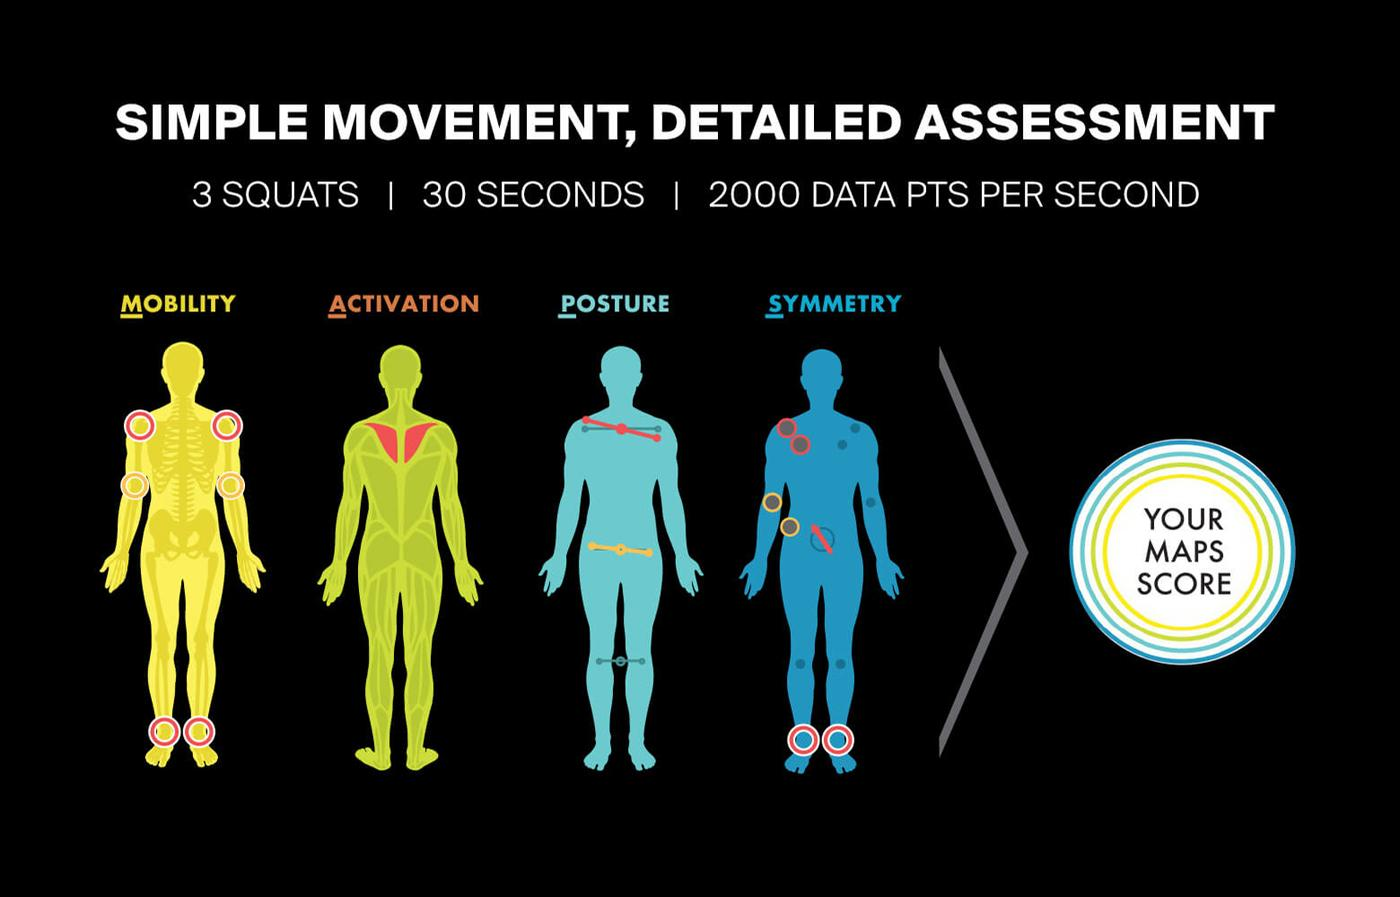 The TRX technology identifies movement inefficiencies across four critical categories – mobility, activation, posture and symmetry / TRX